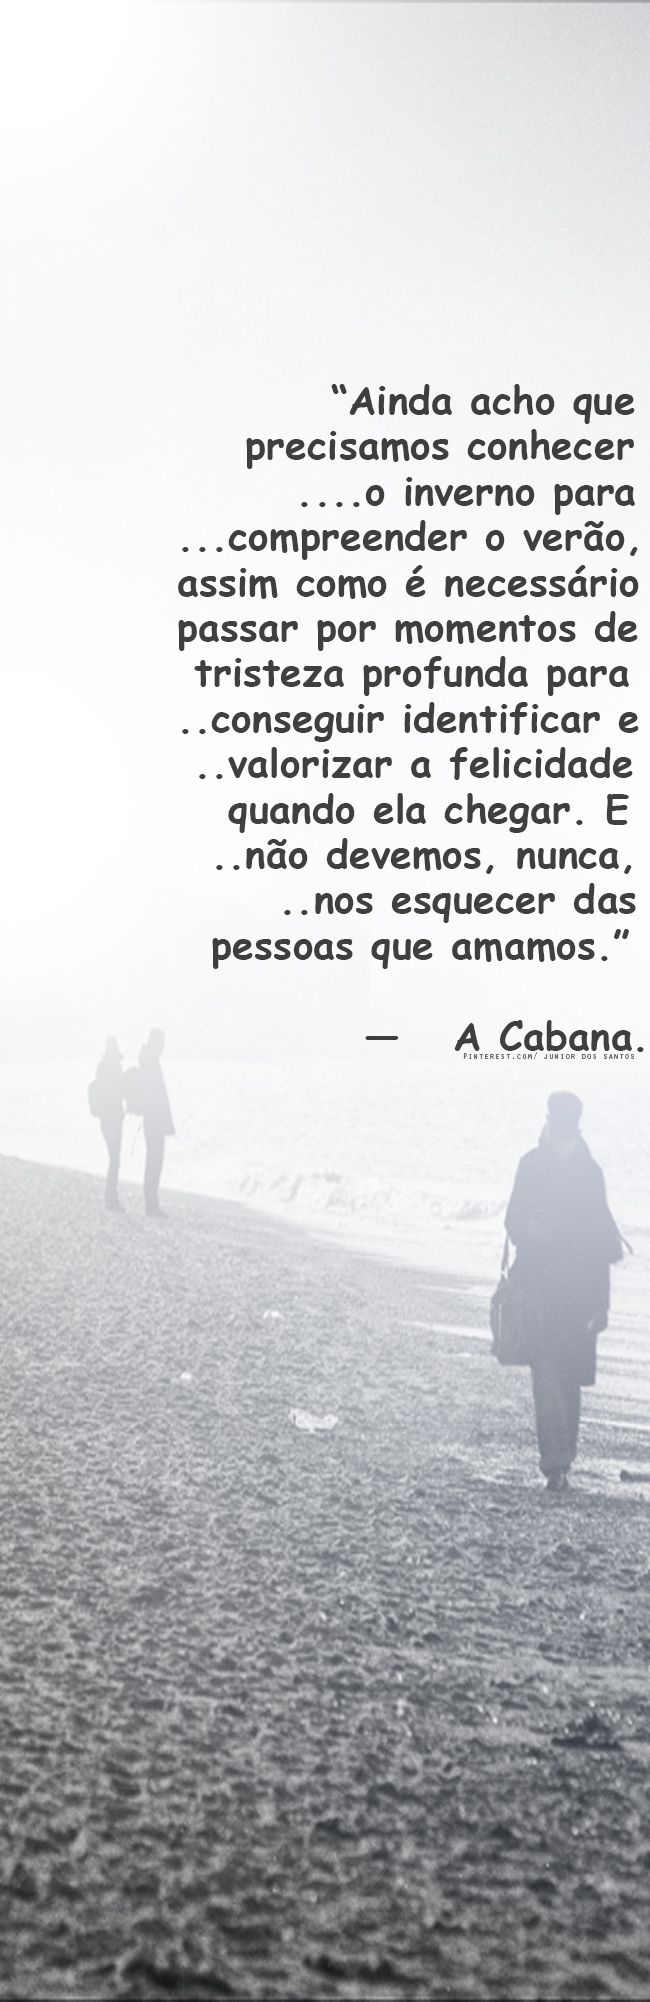 Excepcional 11 best a cabana images on Pinterest | Cabanas, Texts and Cabana DT83